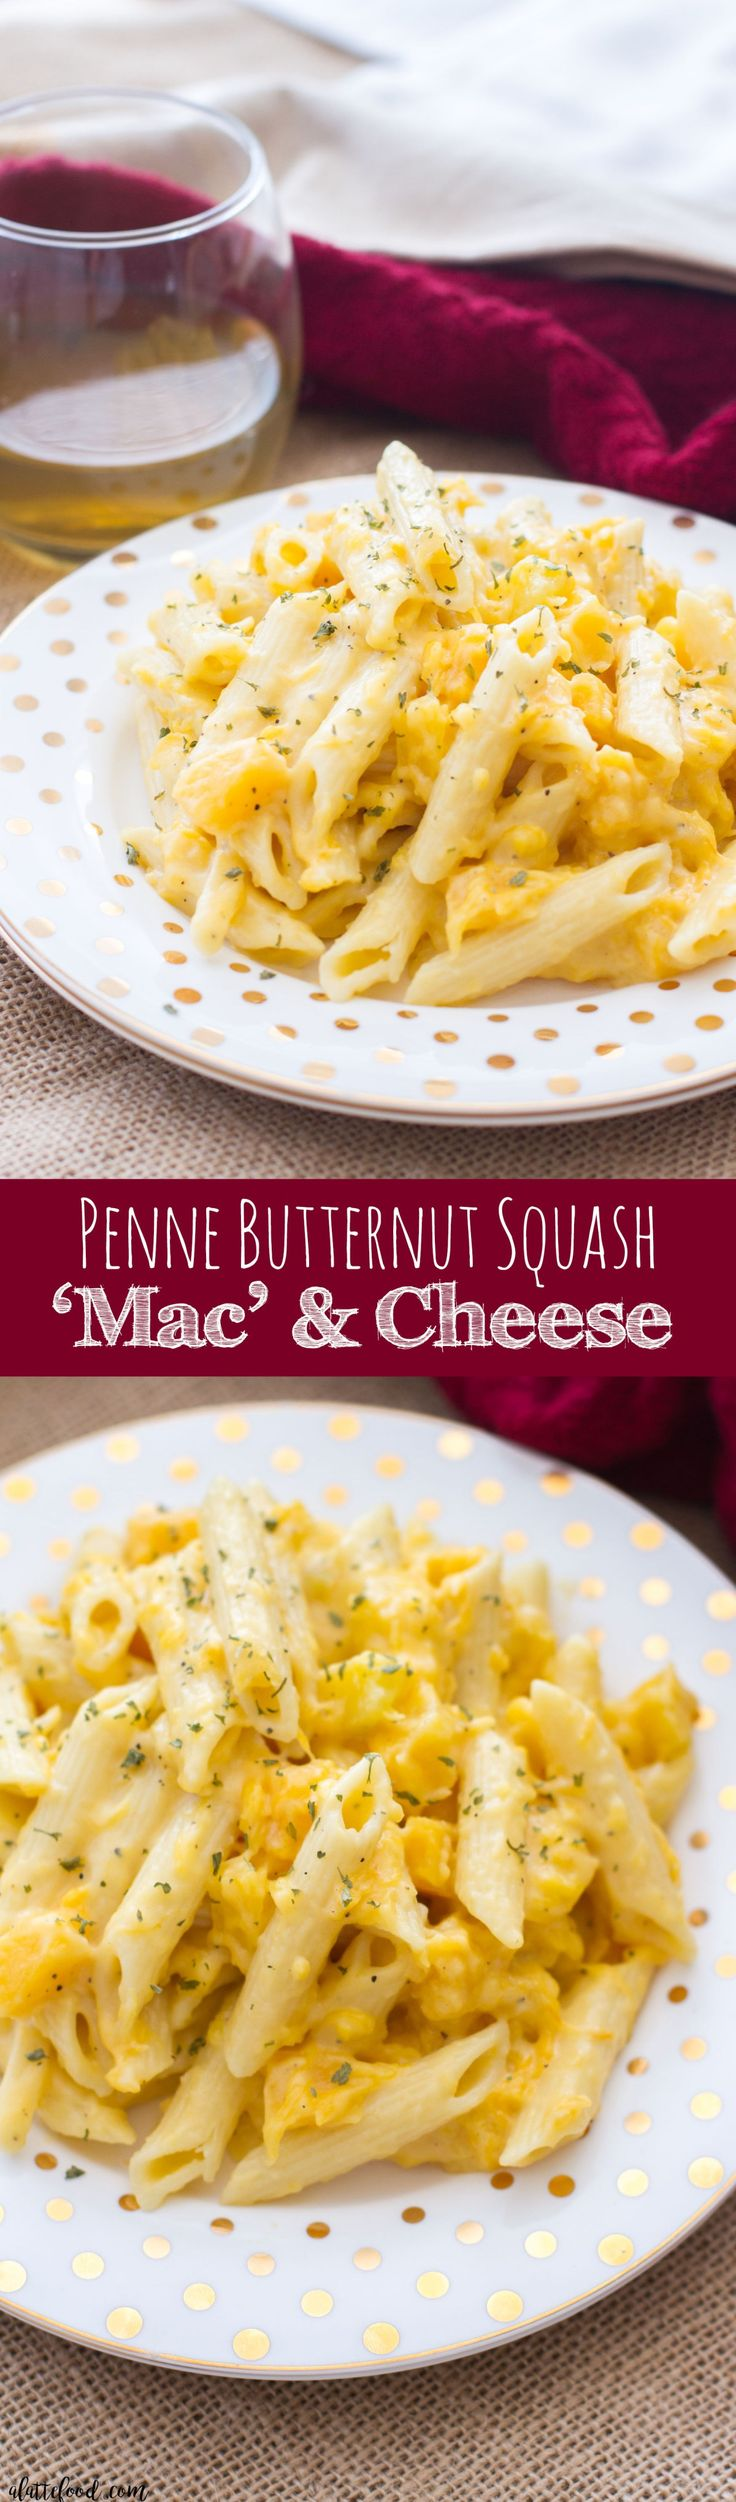 This easy stovetop mac and cheese recipe uses penne pasta, butternut squash, and sharp cheddar cheese to give the classic comfort food a fall dinner twist!